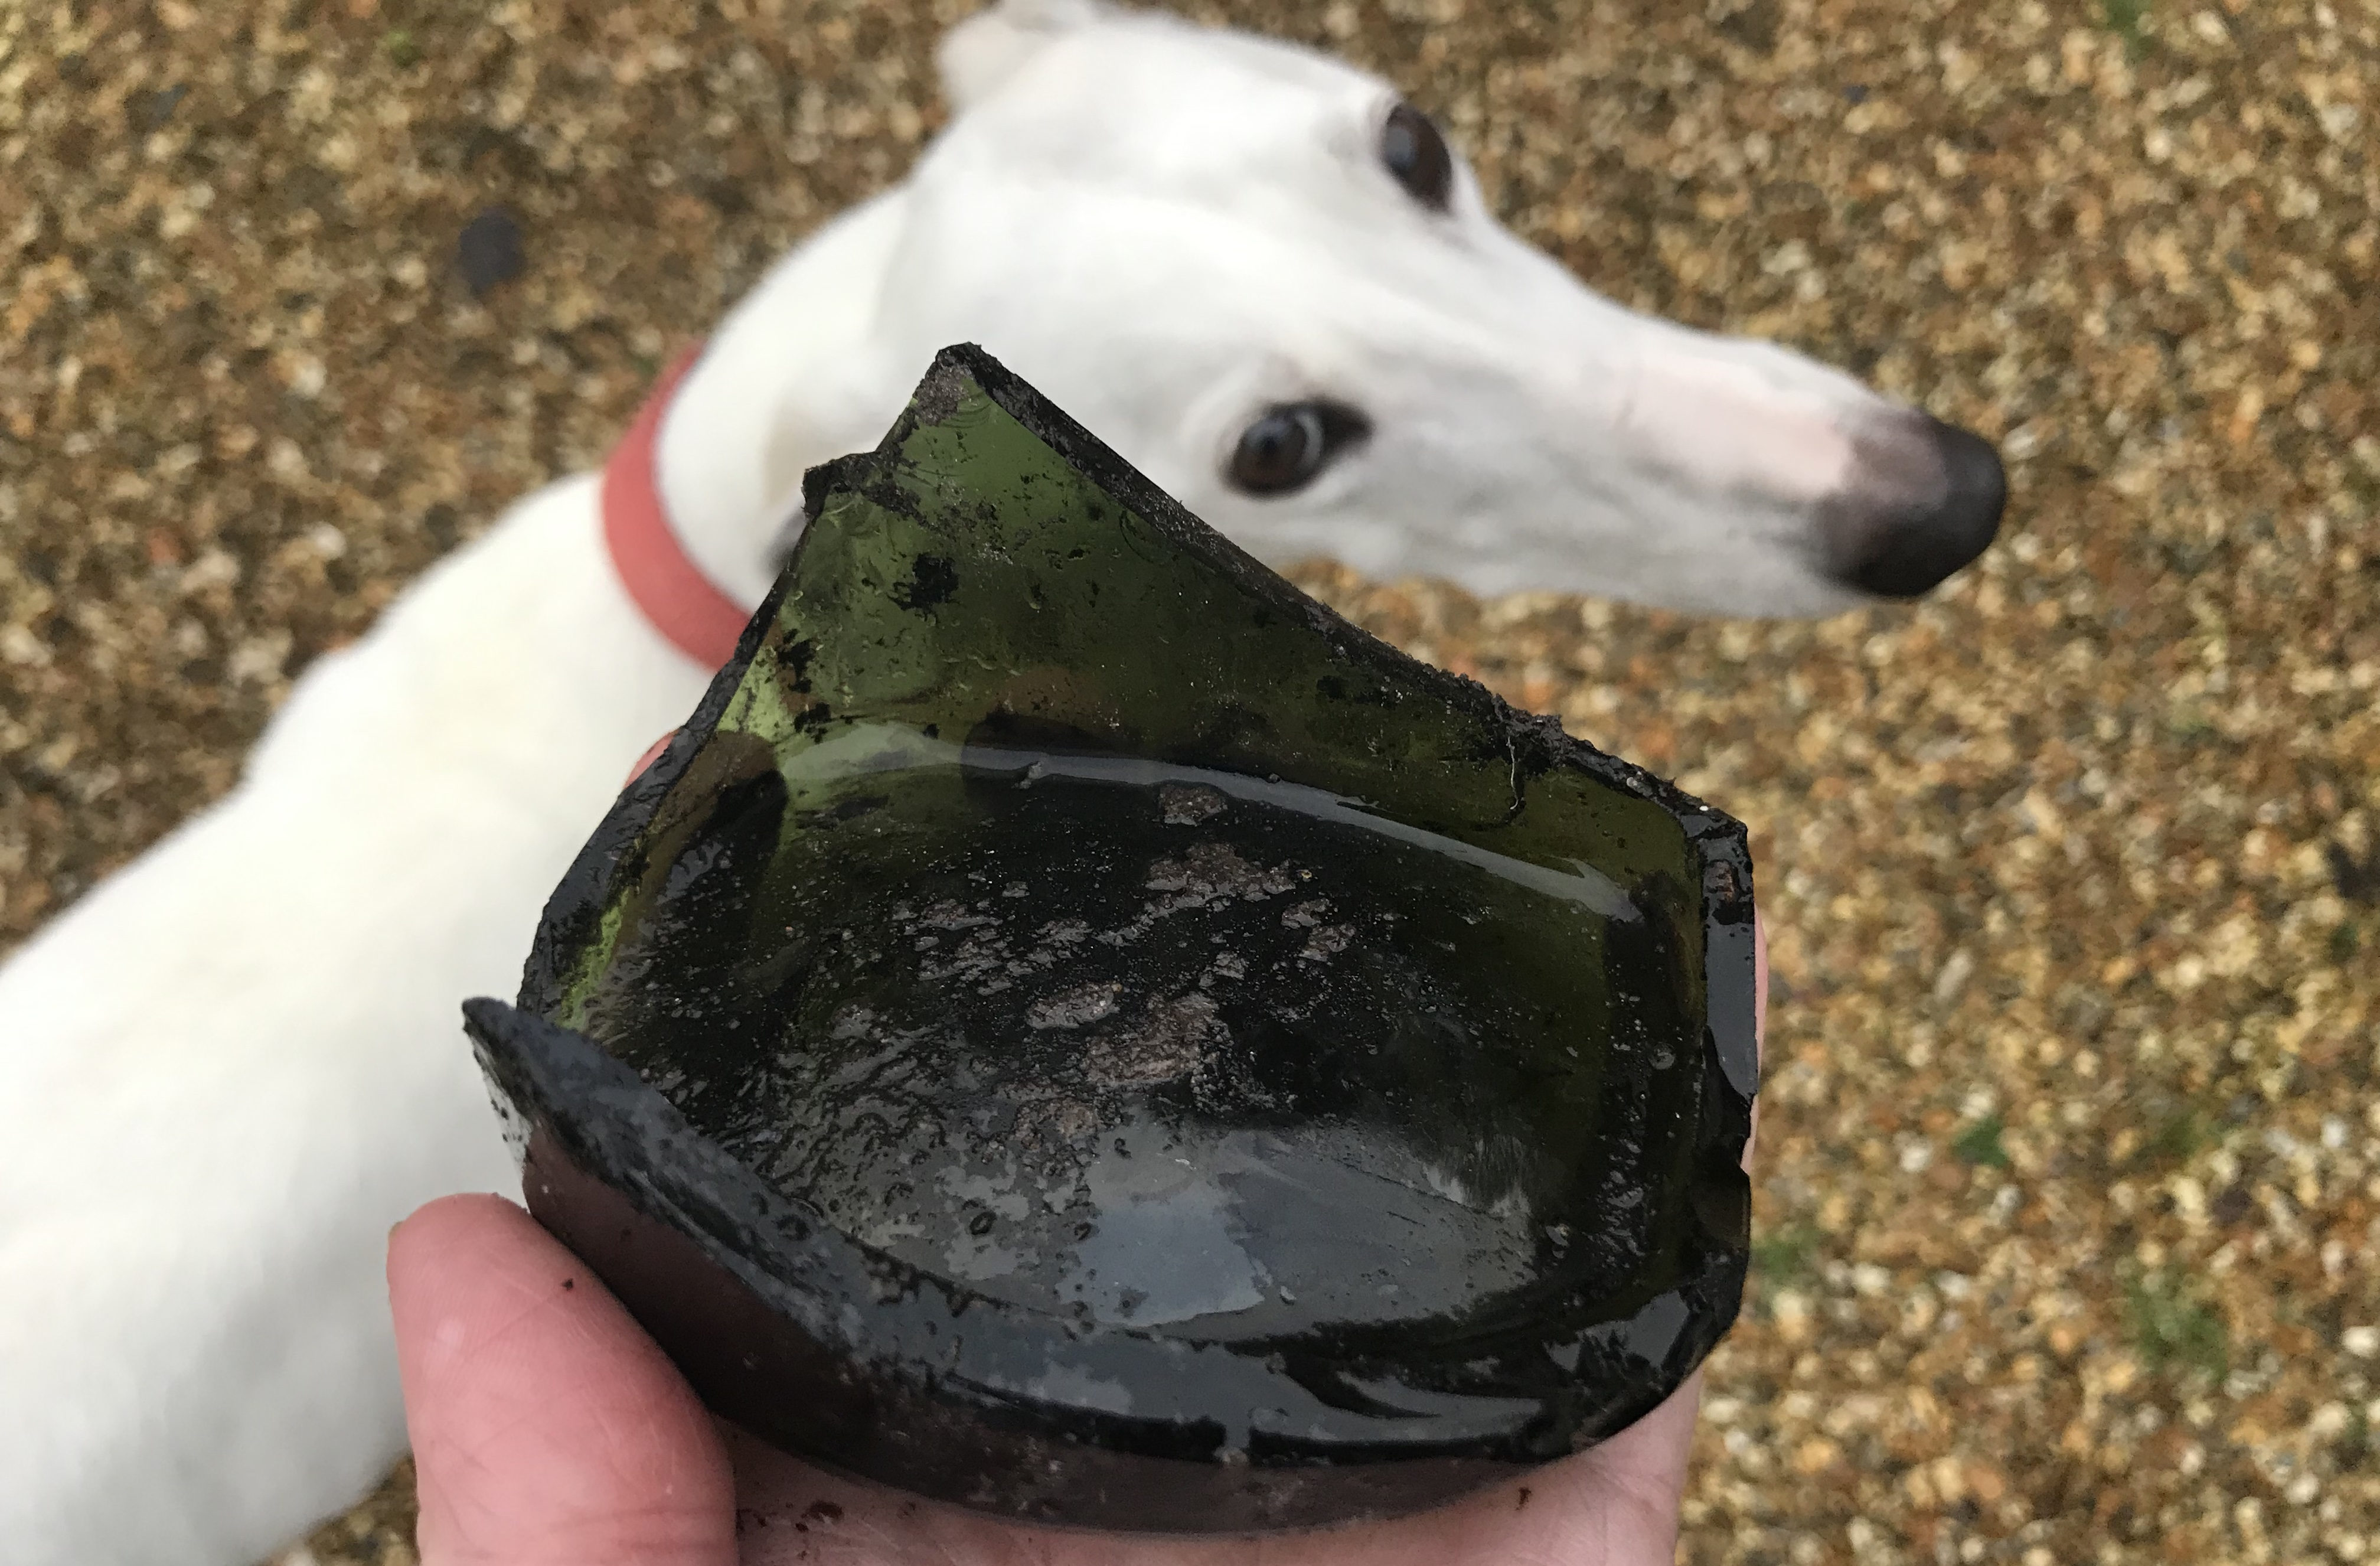 Rubbish glass with dog